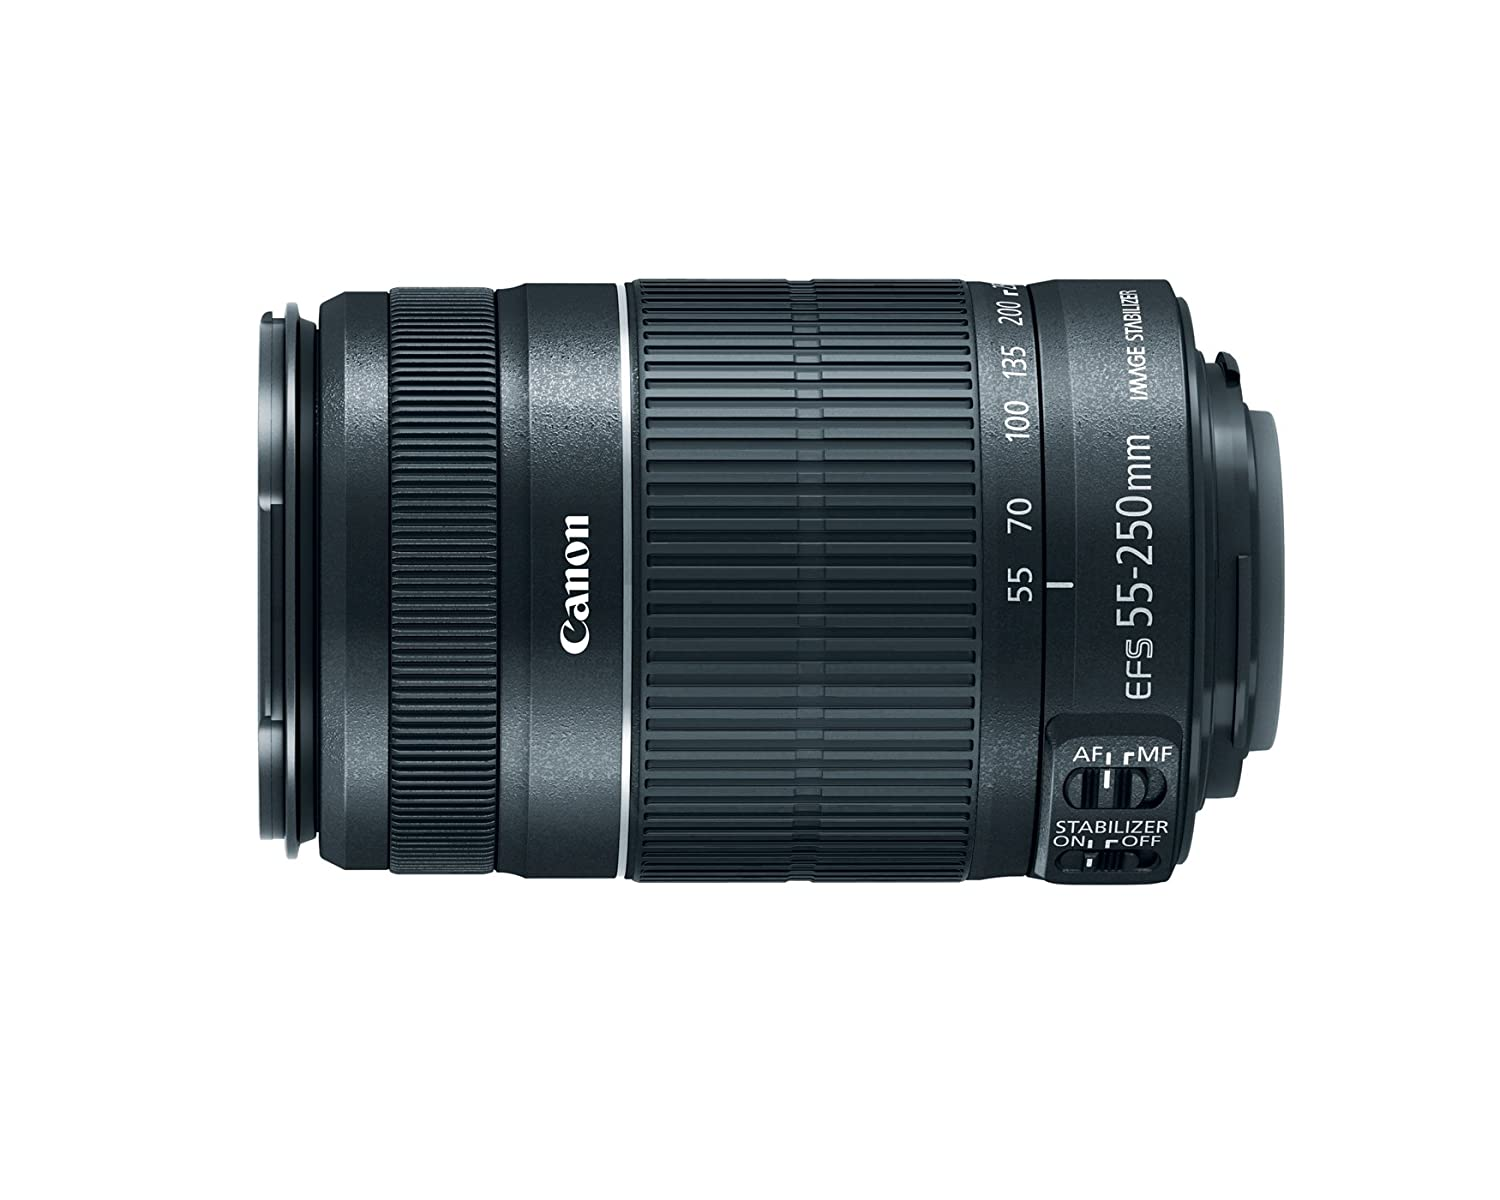 amazoncom canon efs 55250mm f4056 is ii telephoto zoom lens by digital slr camera lenses camera u0026 photo